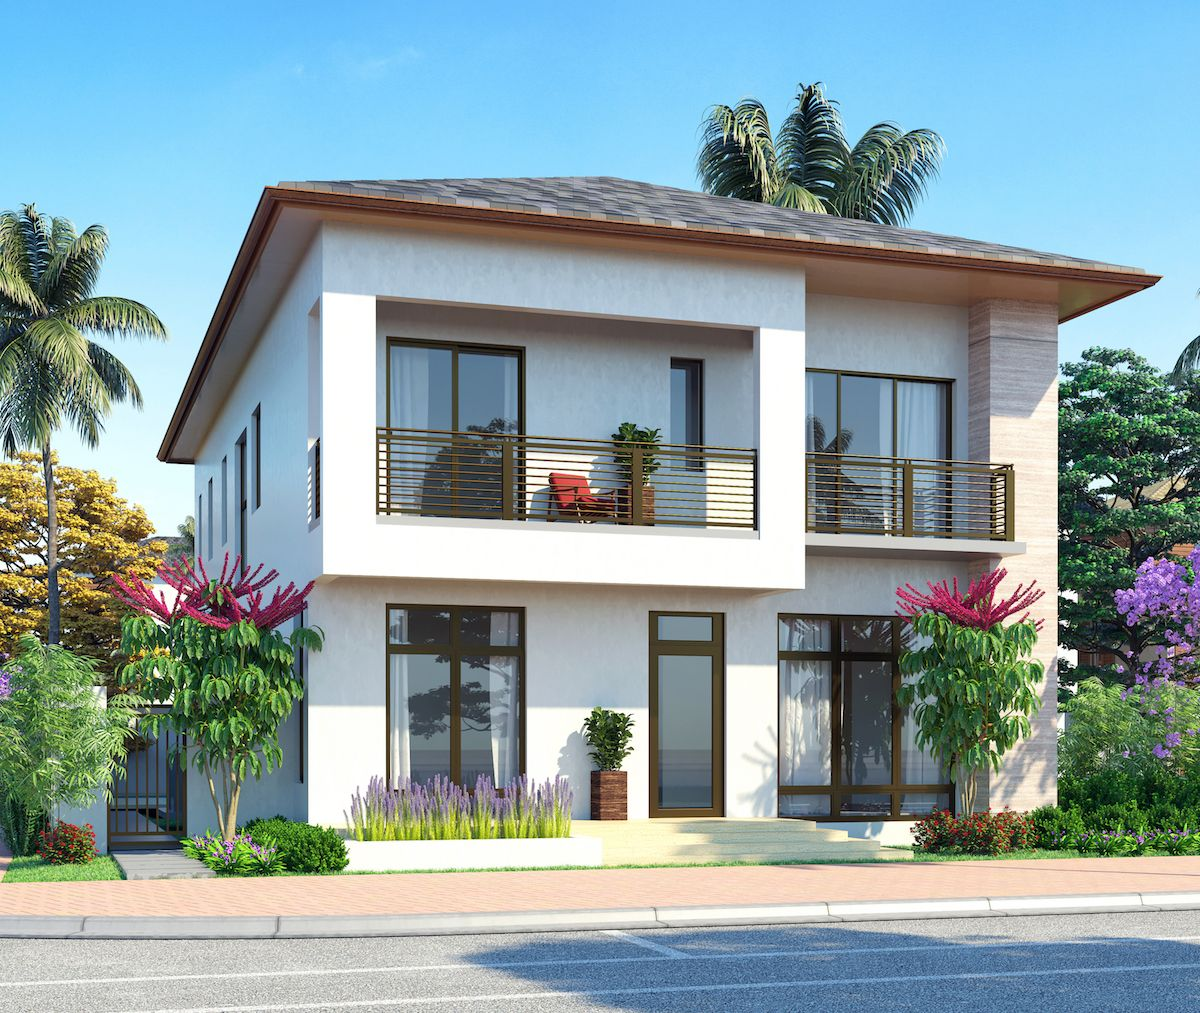 Cc homes canarias at downtown doral model c two story for 2 story homes for sale